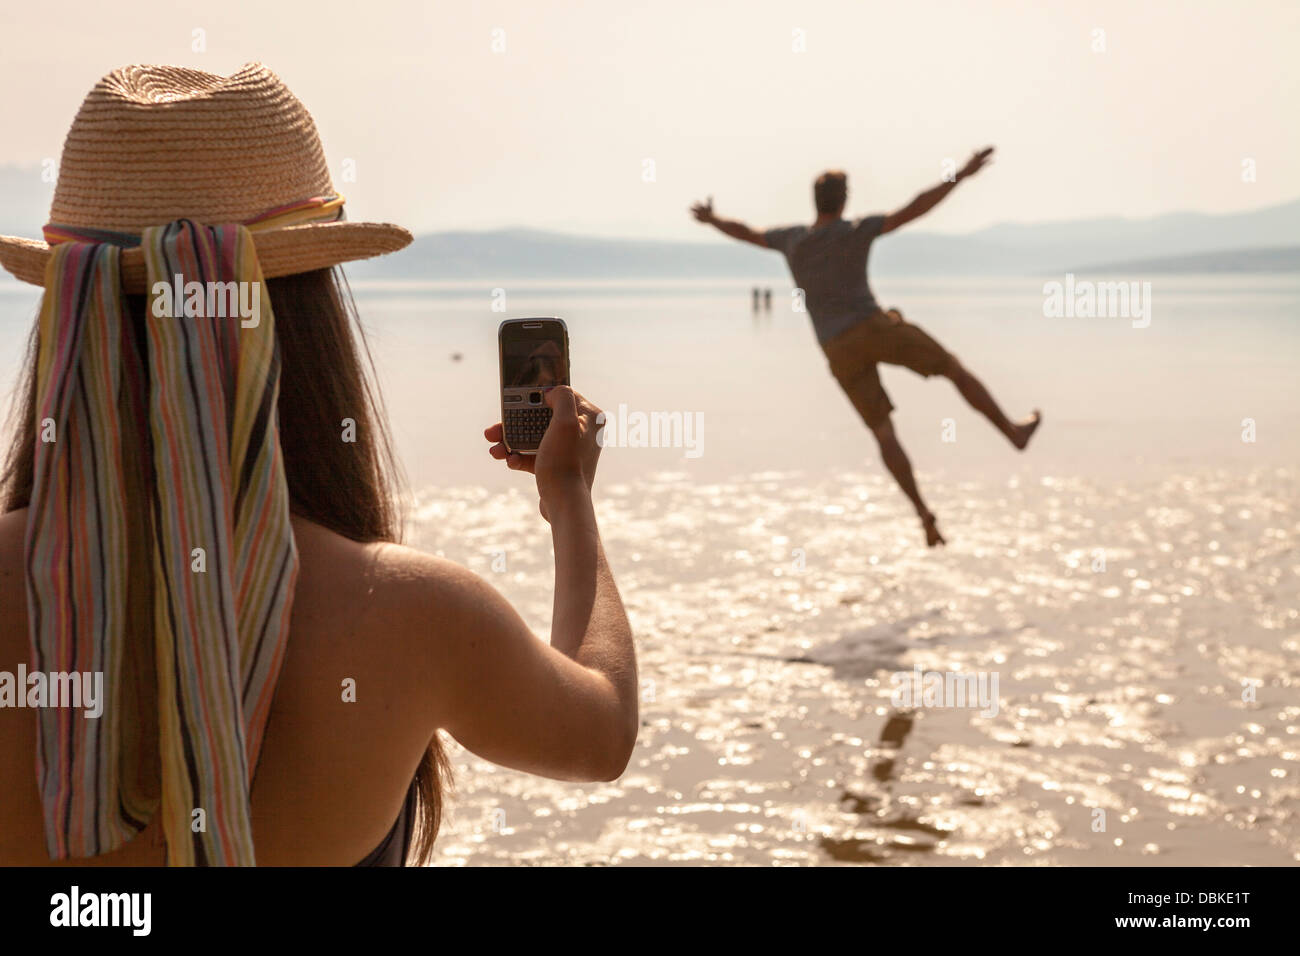 Croatia, Young woman on beach taking pictures - Stock Image